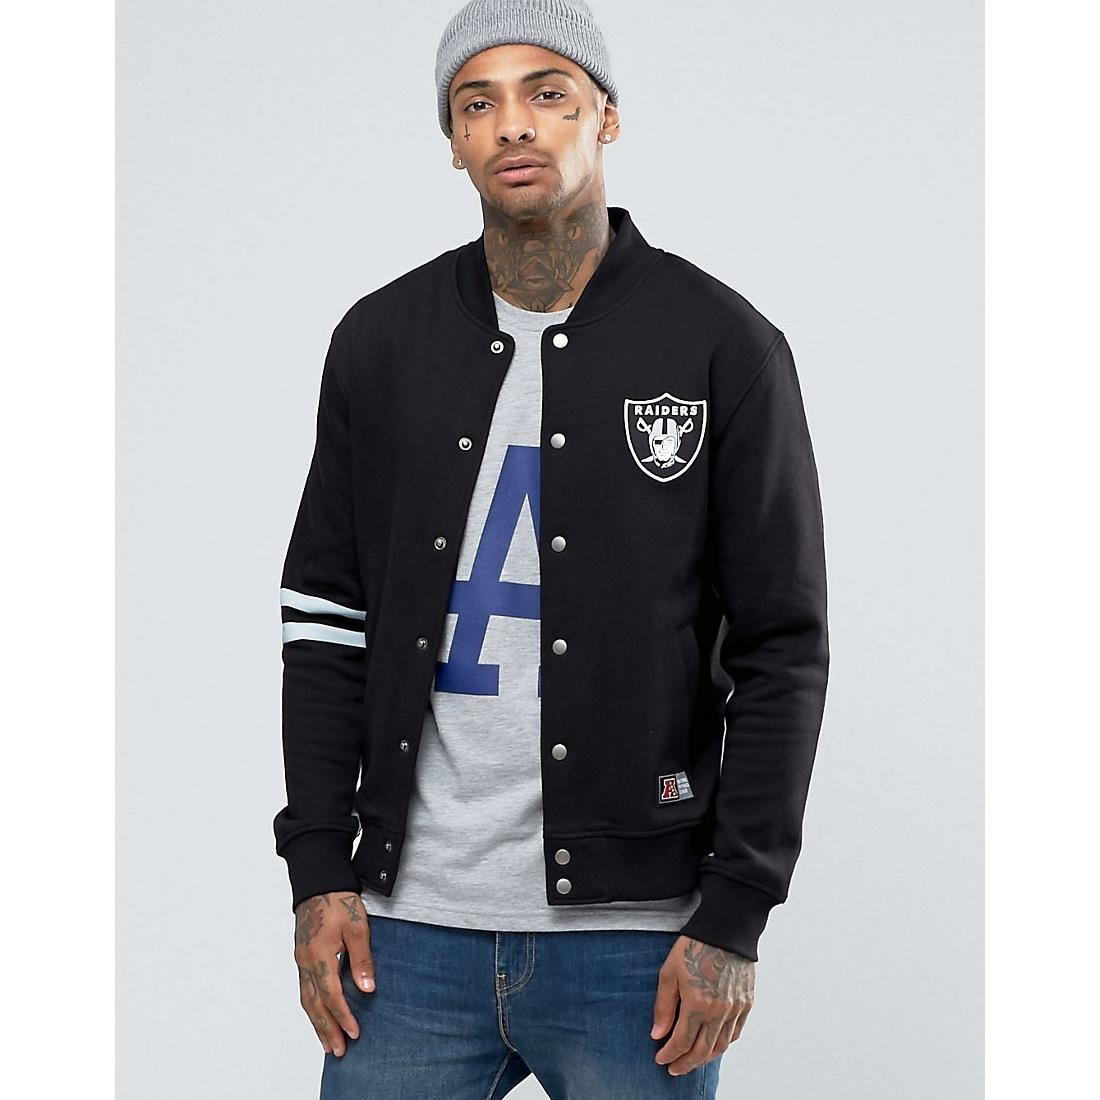 Raiders Letterman Jacket | Oakland Raiders Vest | Oakland Raiders Coats